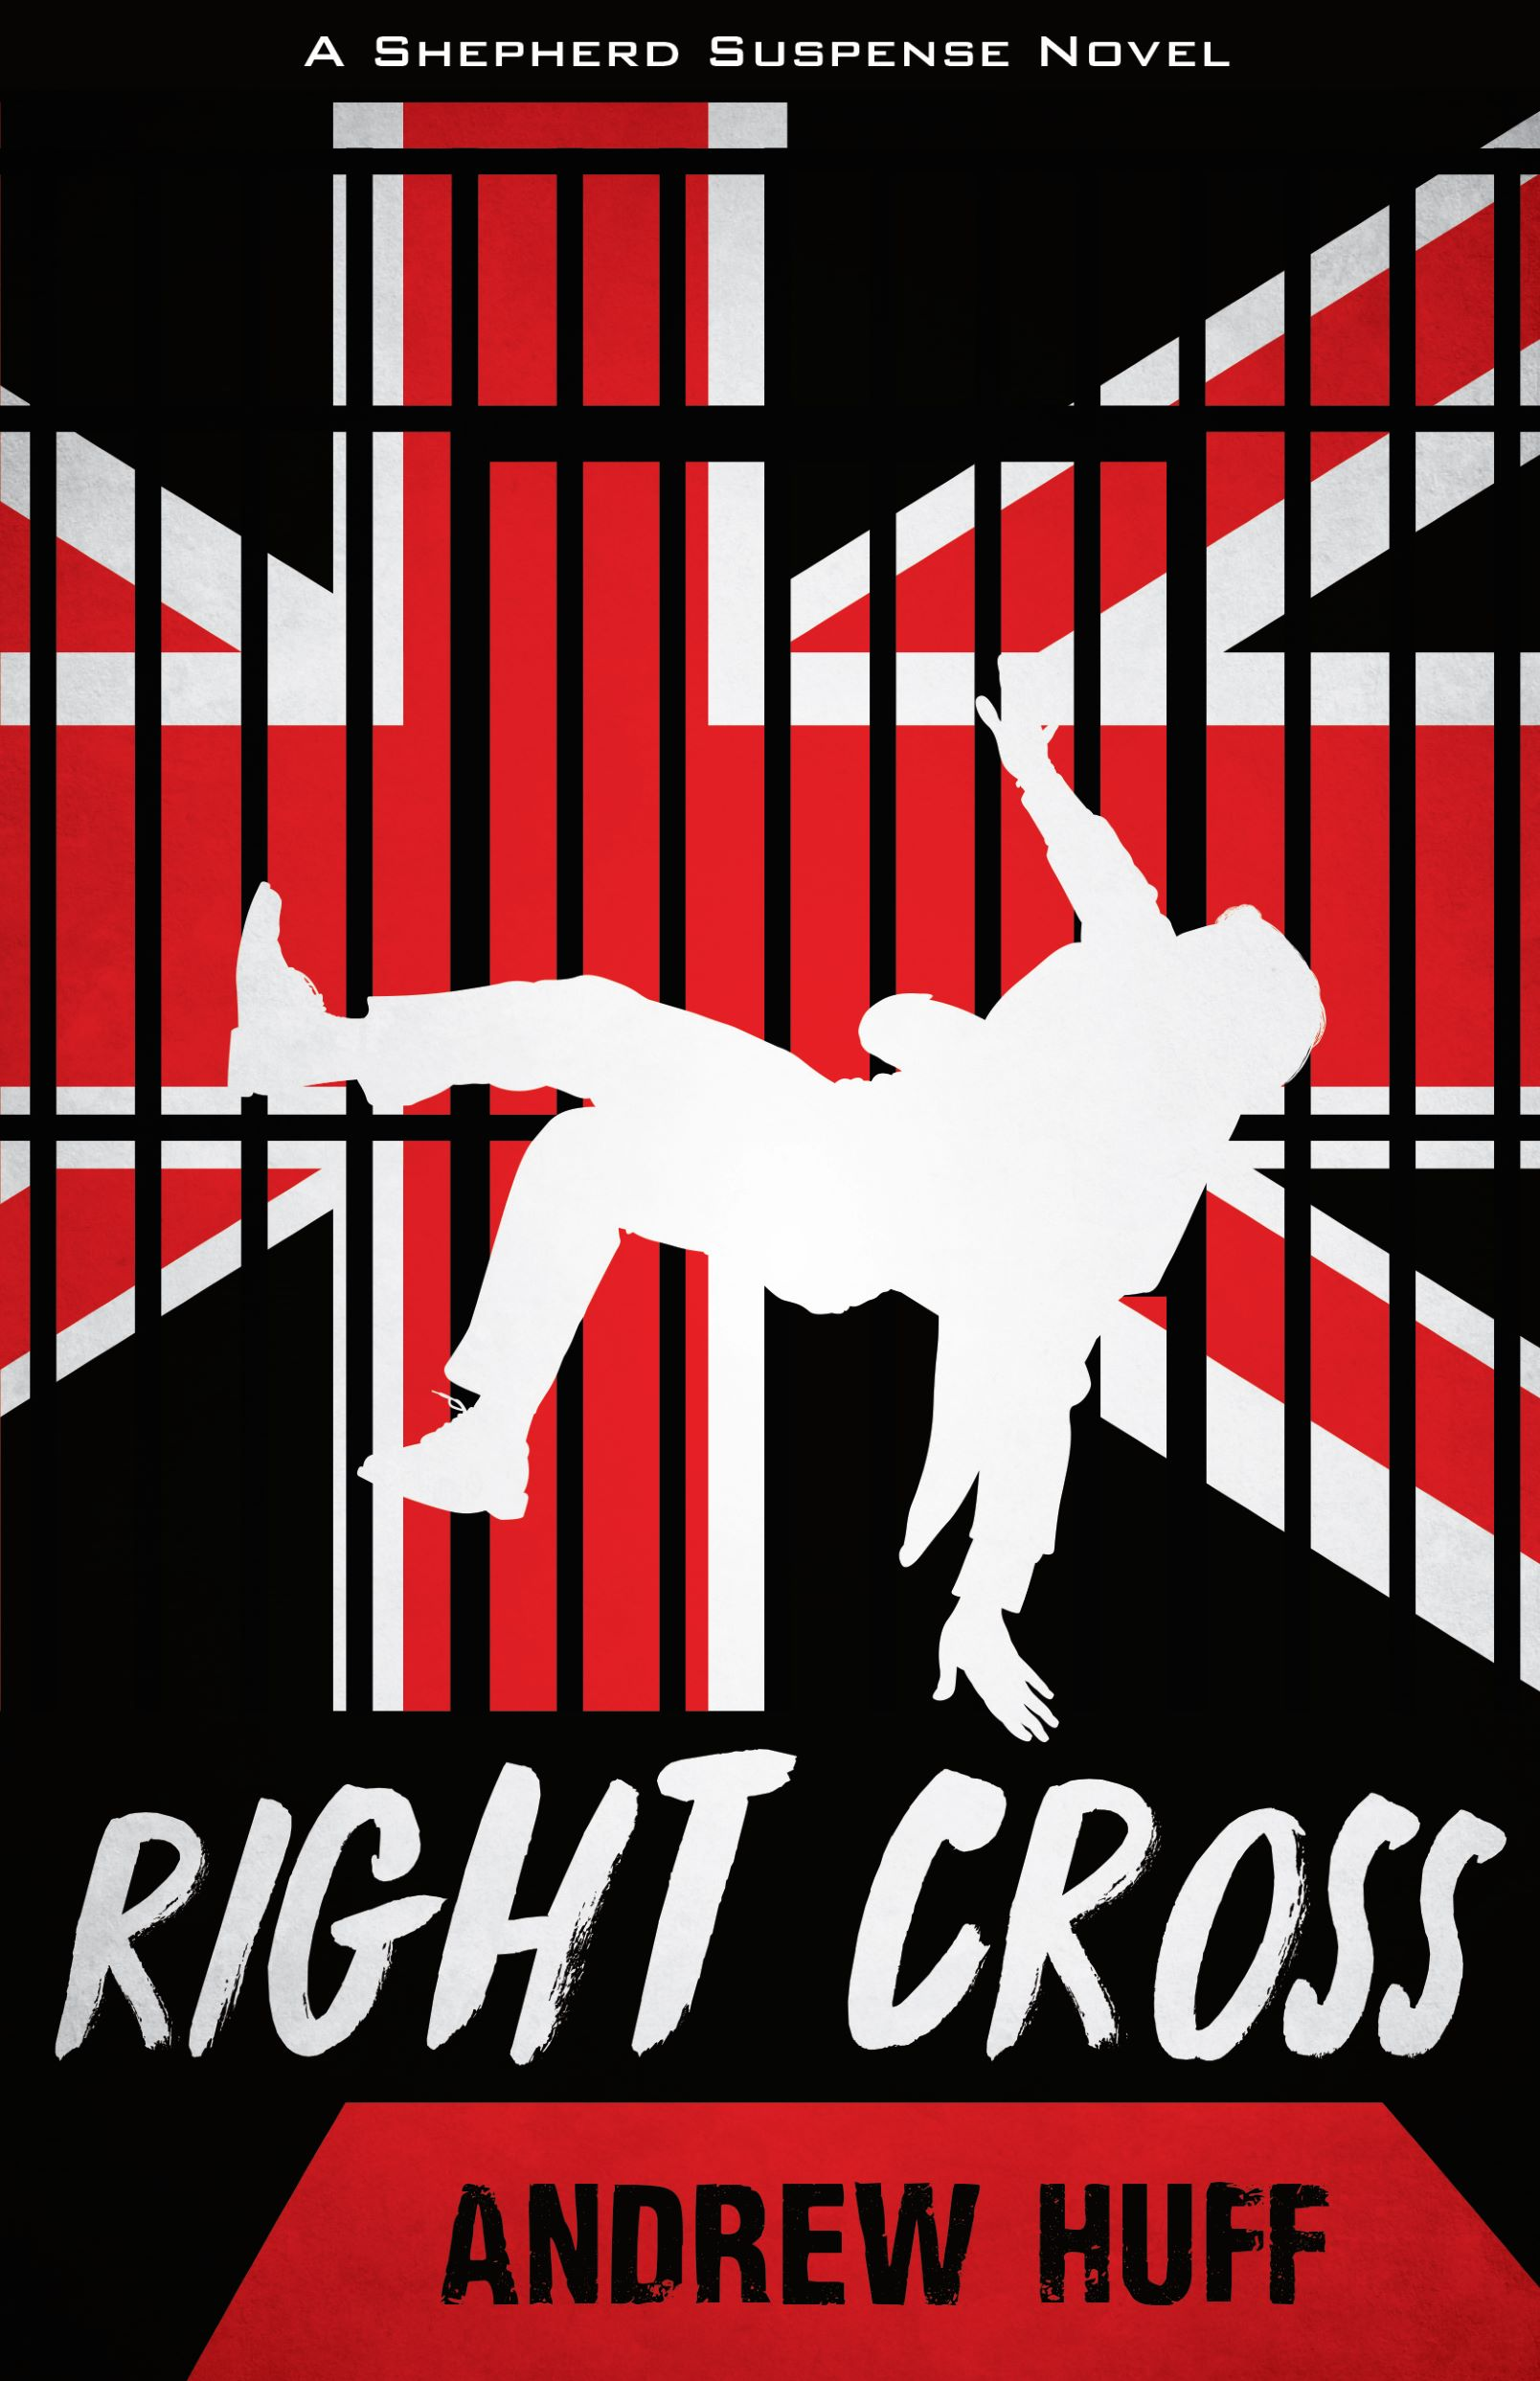 Right Cross